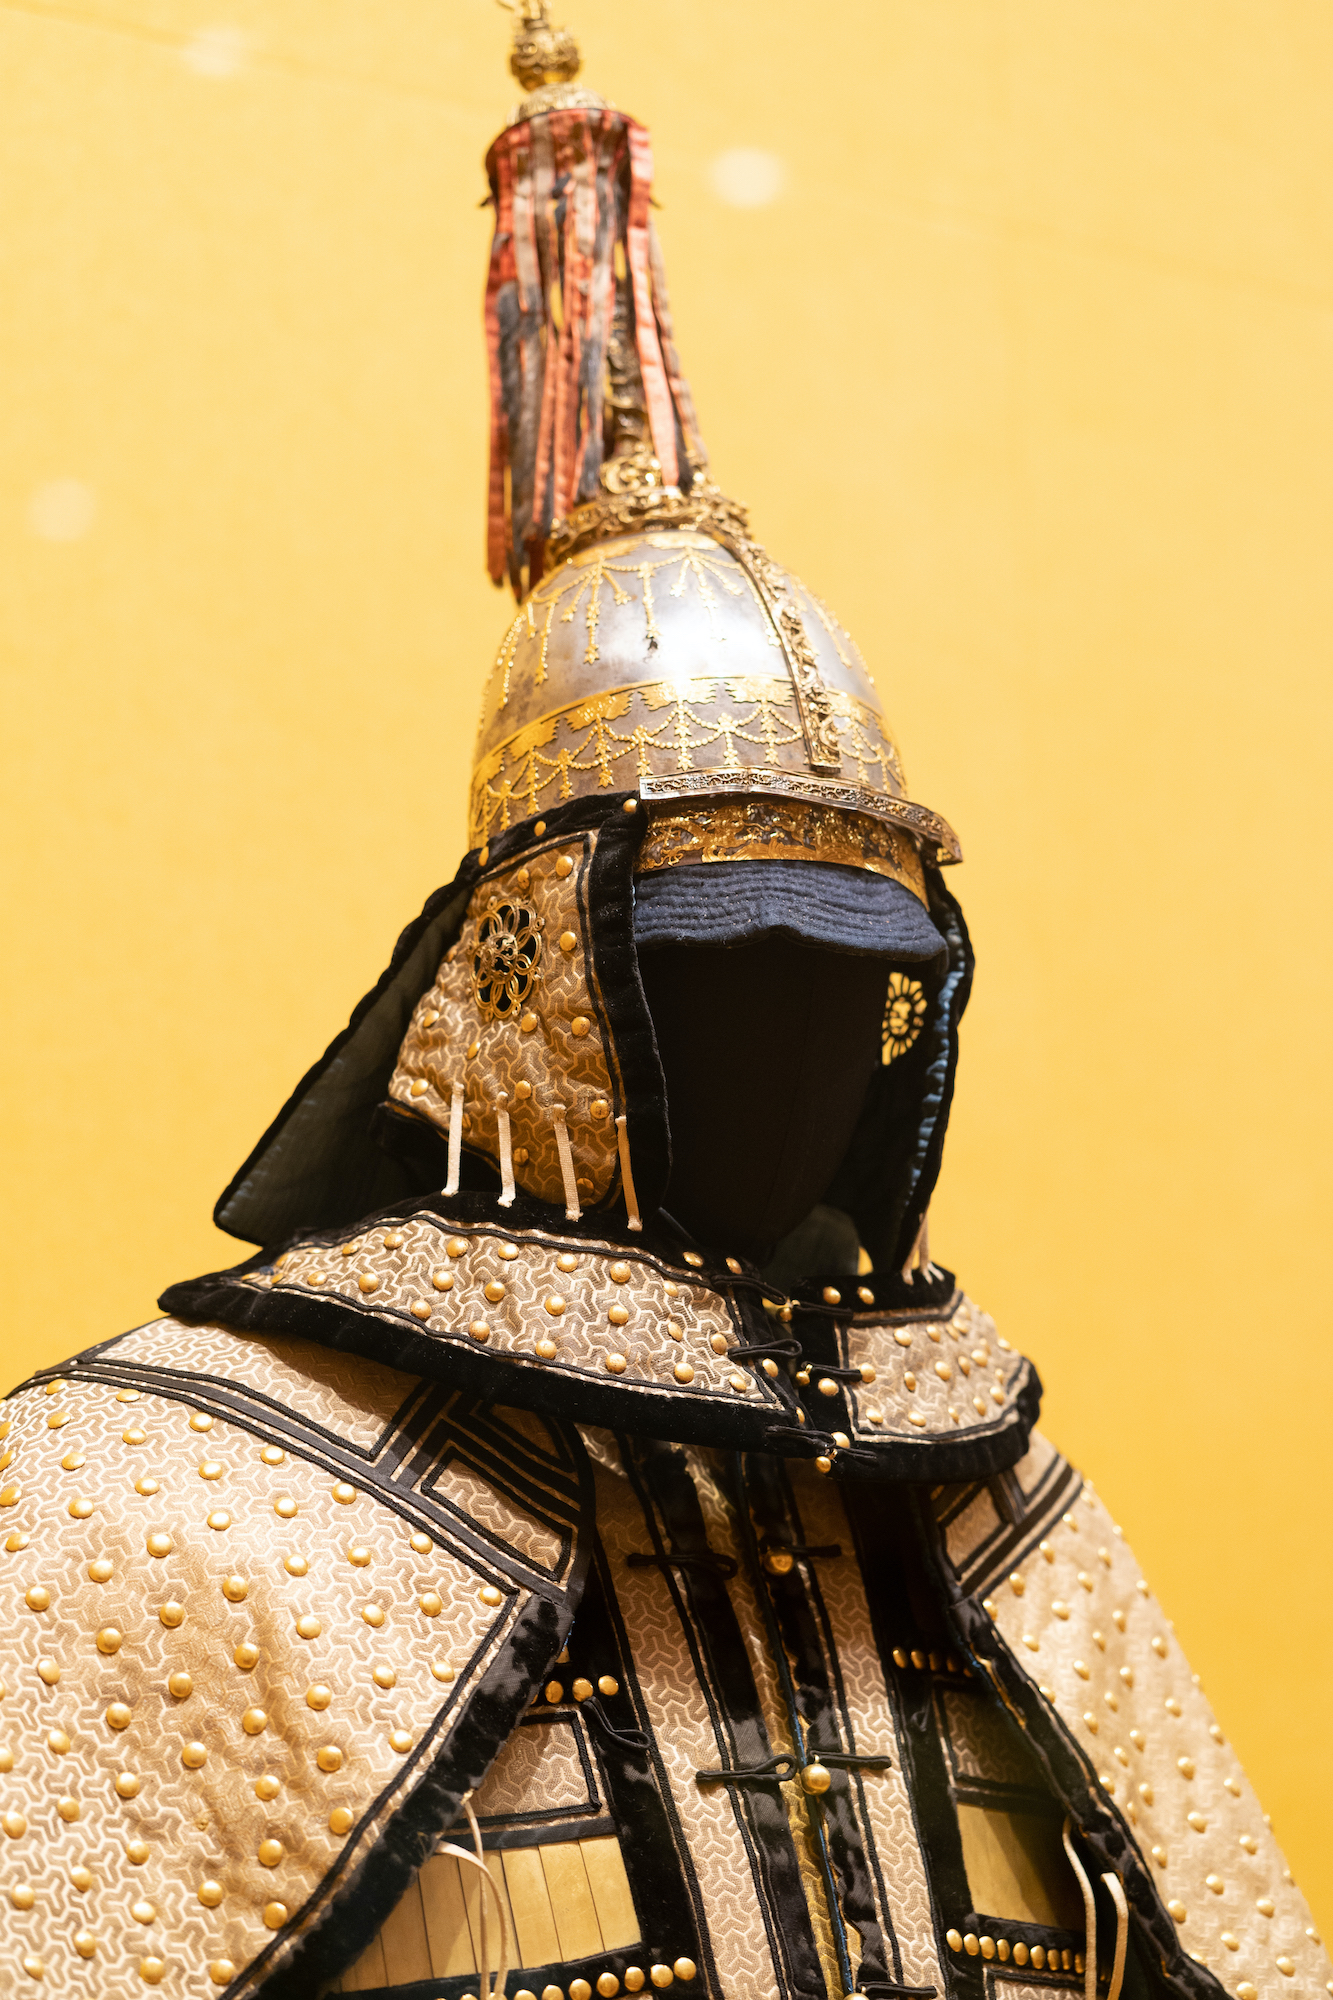 Emperor Xianfeng's Armour Suit with Gold-Woven Brocade in Herringbone Patterns and Gold Plates | Photo by Denzel Calangi